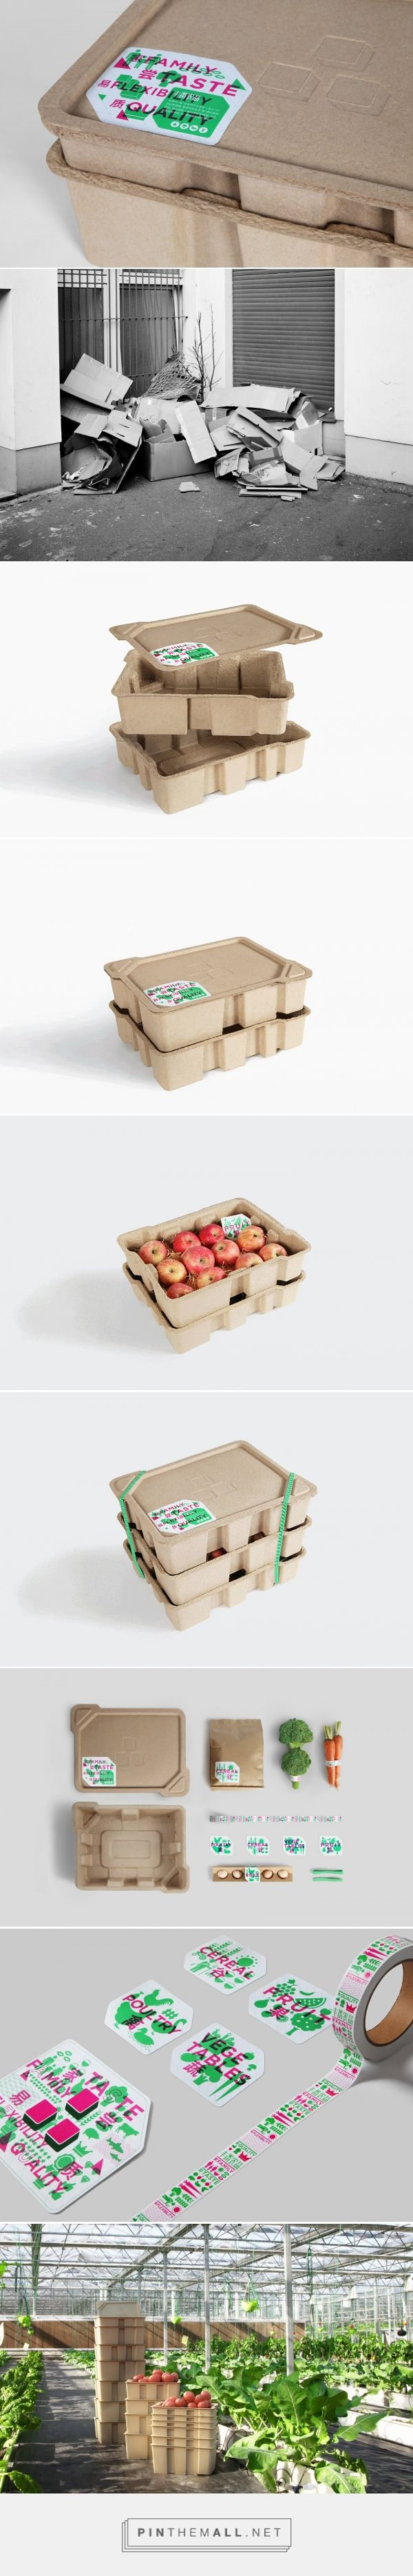 PIN - Clever Stackable Tray - packaging design by Sun Li - https://www.packagingoftheworld.com/2018/03/pin-clever-stackable-tray.html